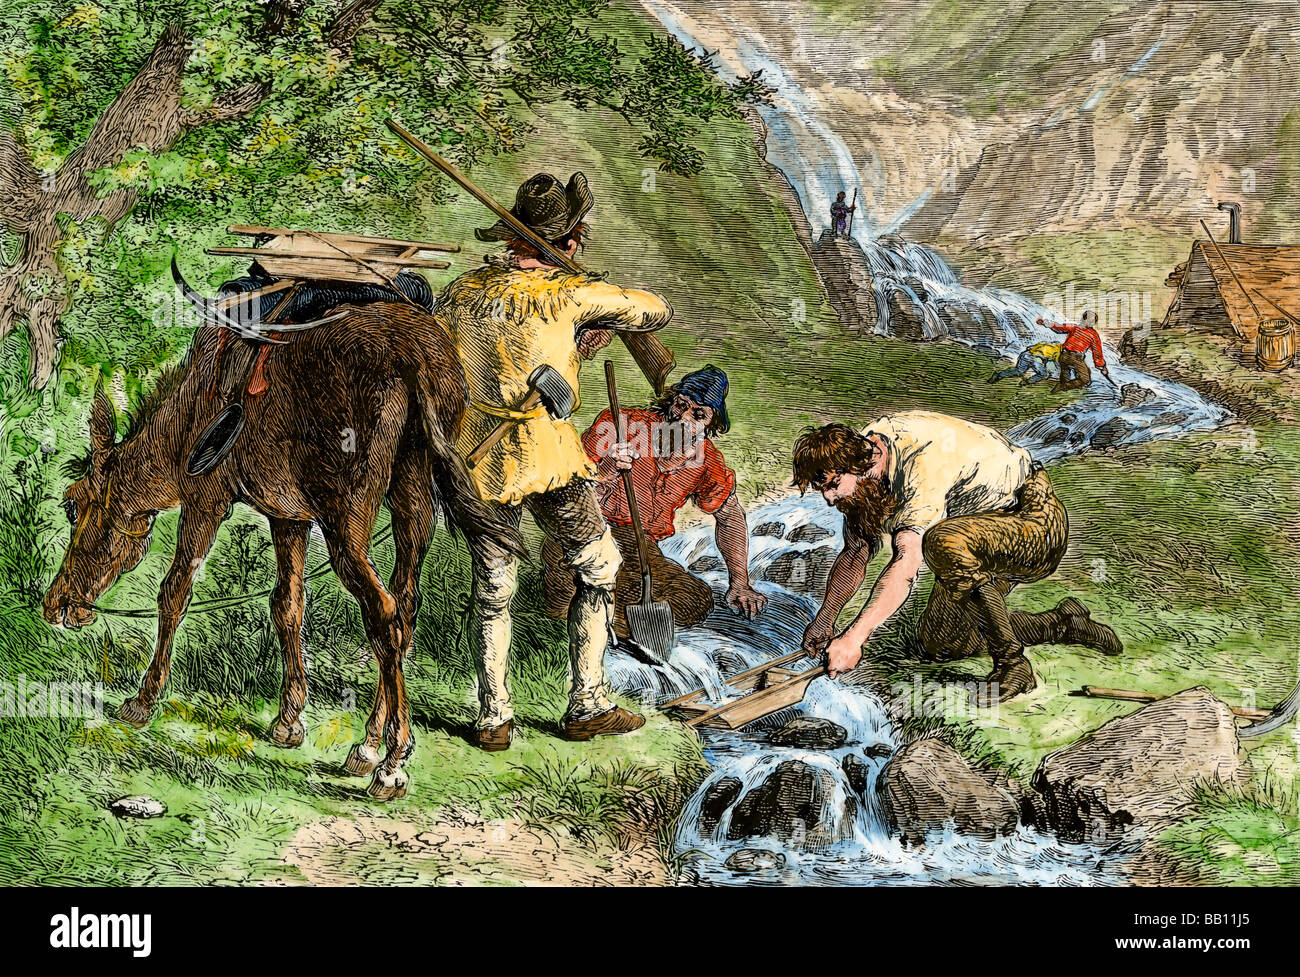 California prospectors washing gravel in a stream looking for gold. Hand-colored woodcut - Stock Image